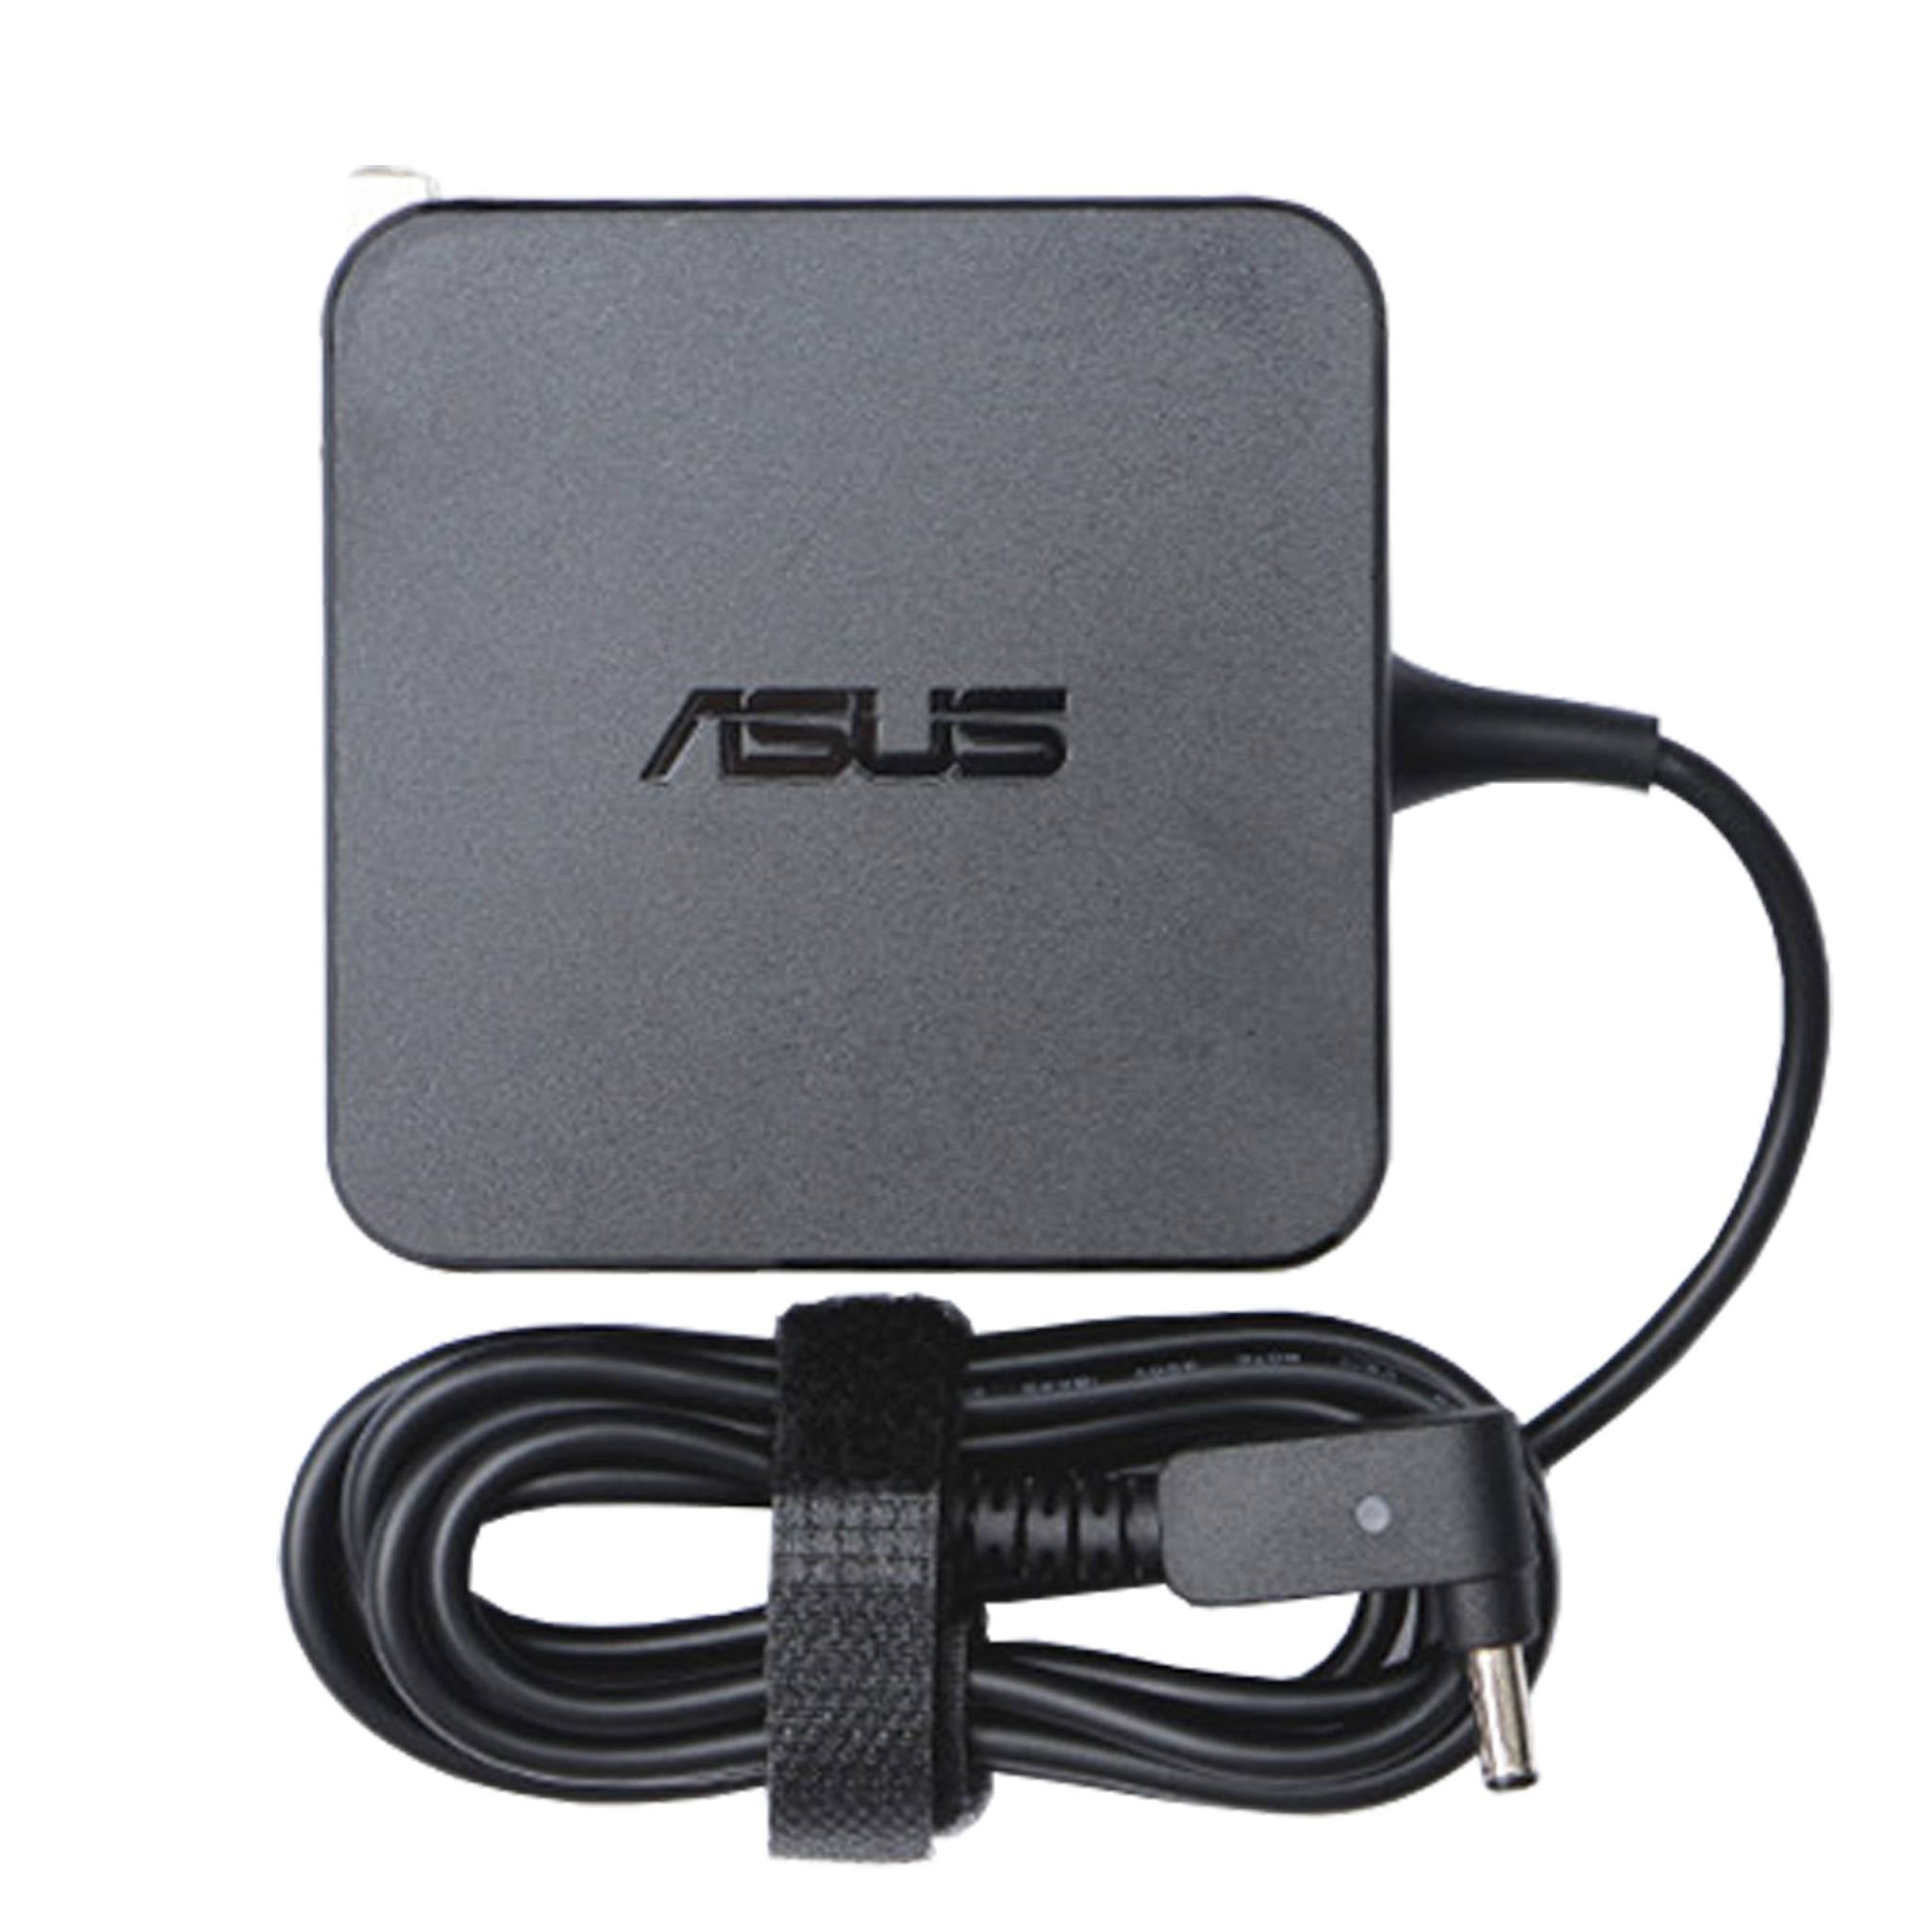 ASUS 19V 3.42A 65W AC Adapter(4.0x1.35mm)